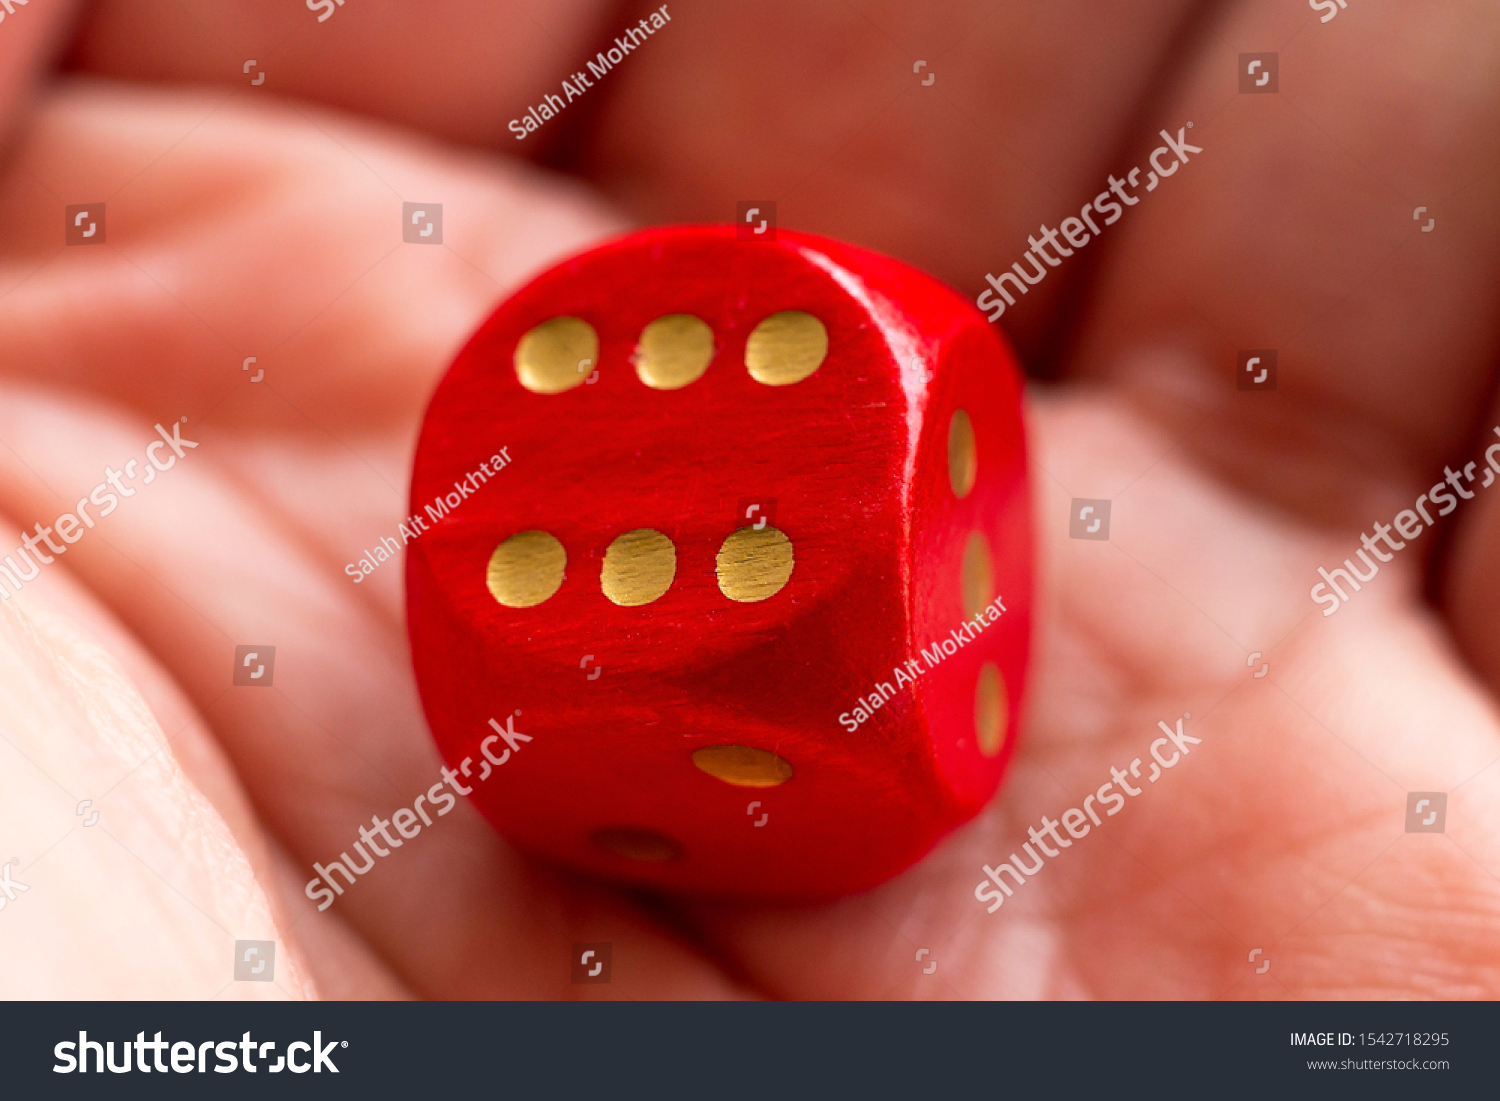 Roll the dice - six diced in hand #1542718295